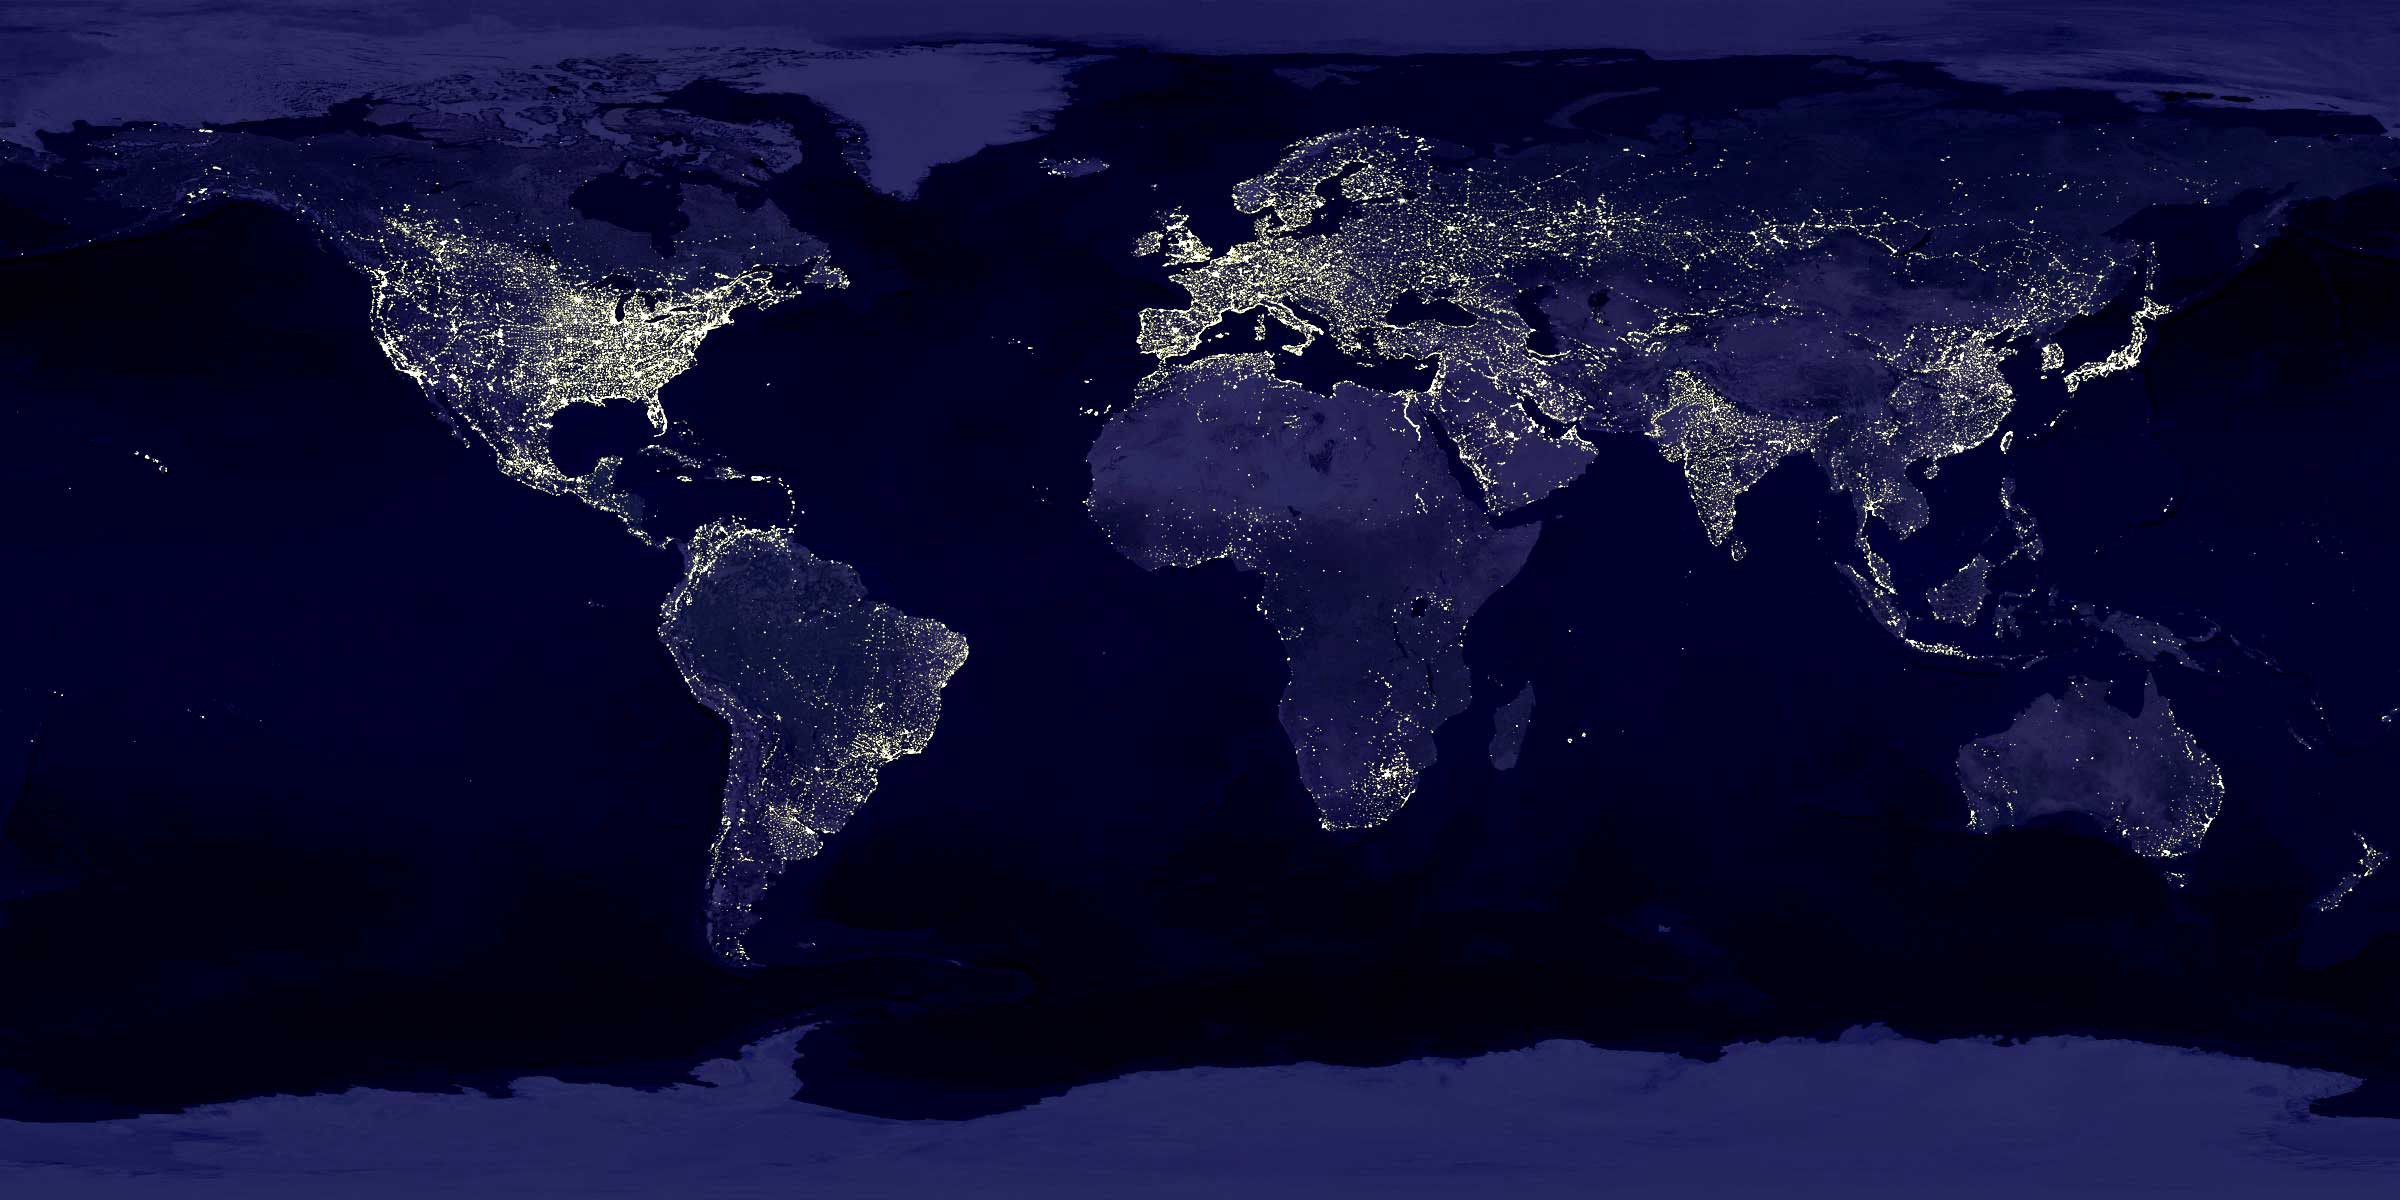 Electricity is the future for all energy - The Future is